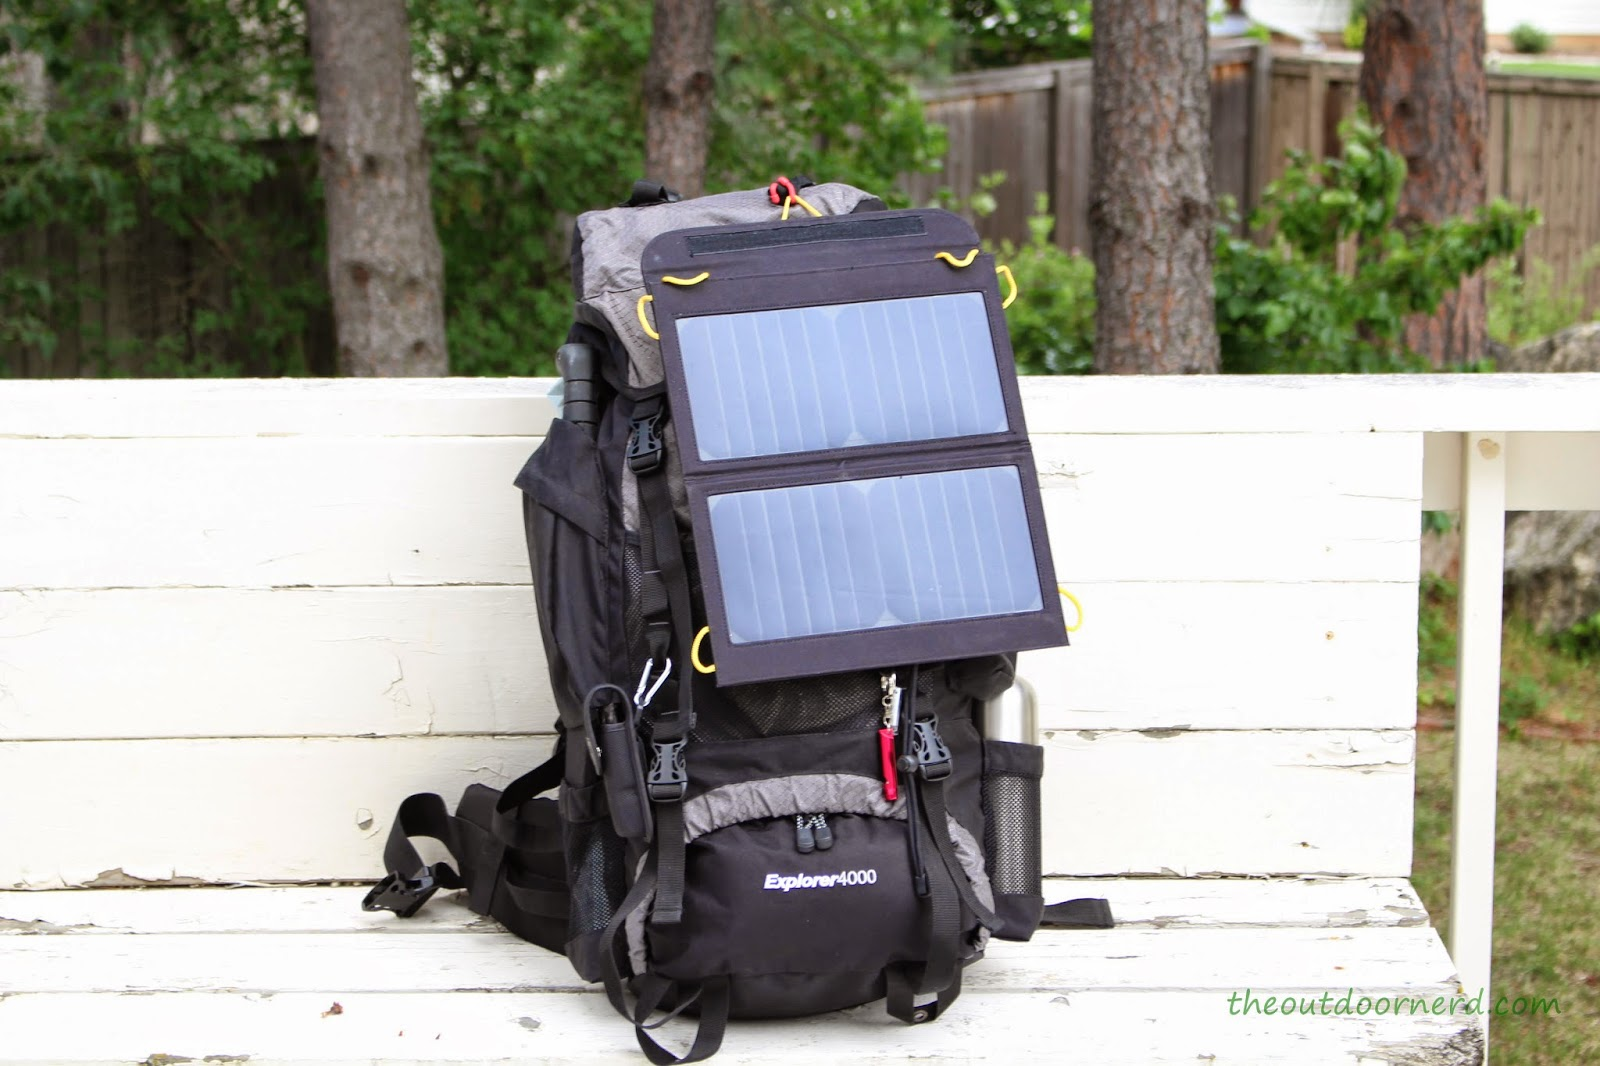 Levin Sol-Wing 13W Solar USB Charger: Attached to Teton Explorer 4000 Backpack